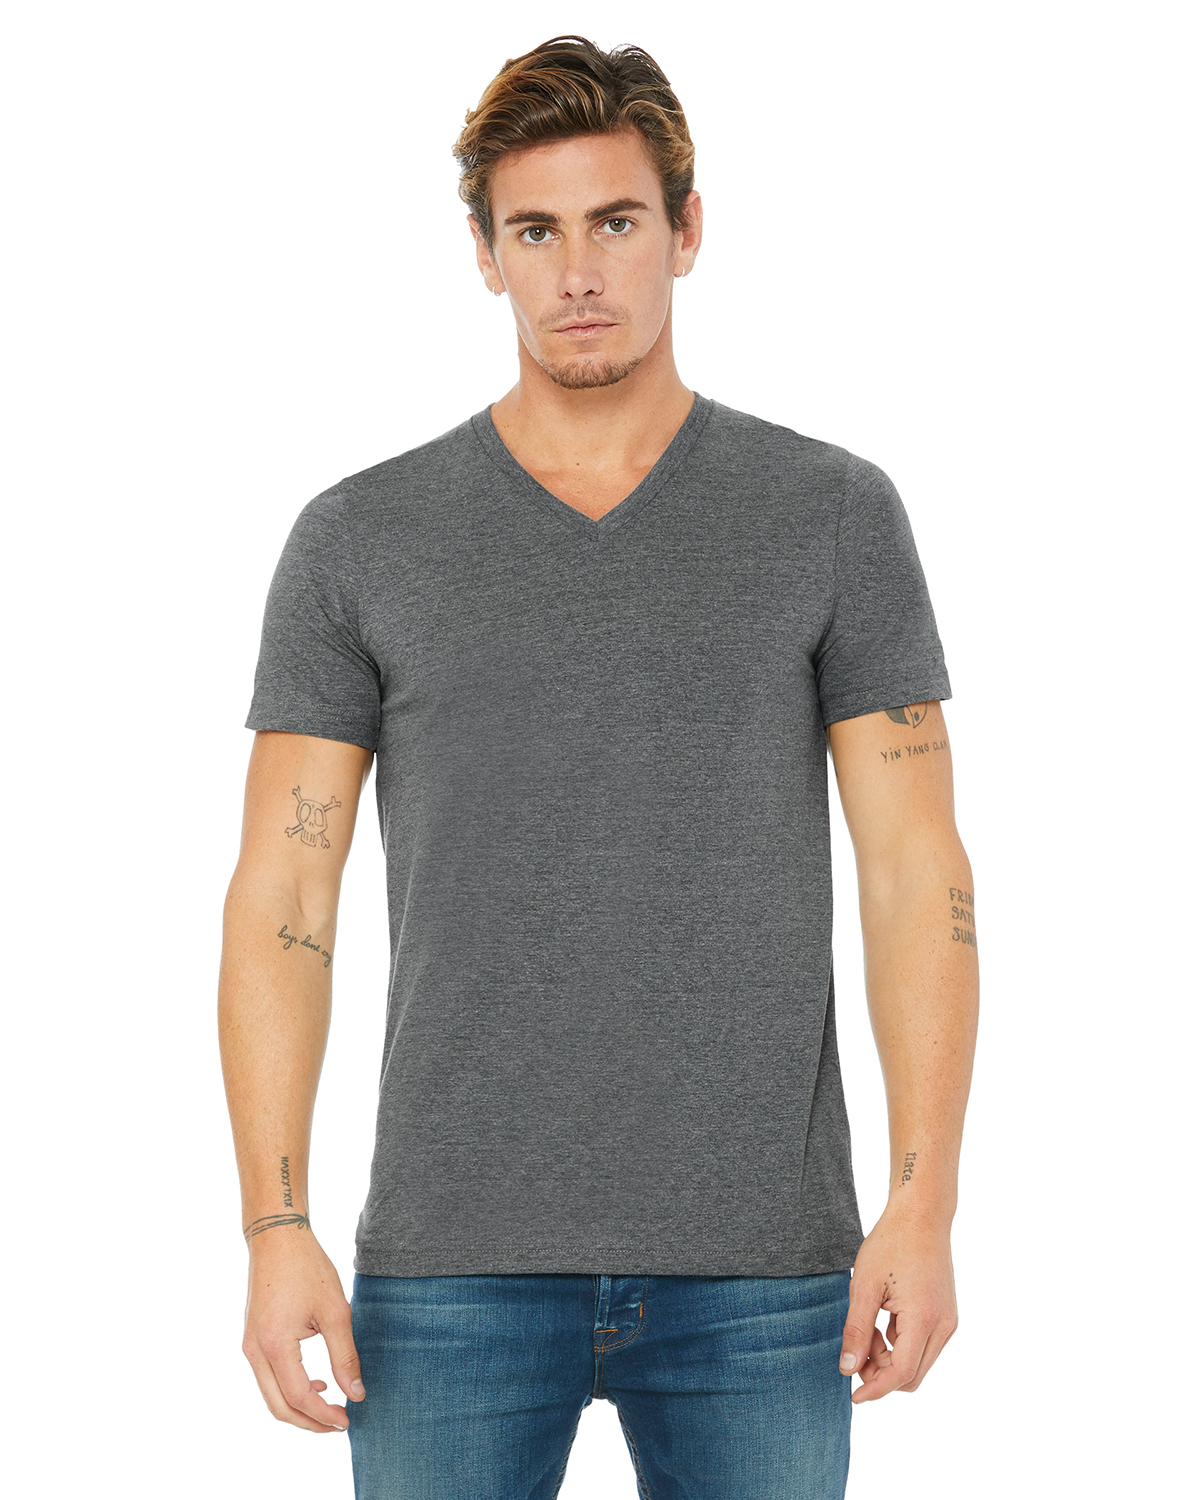 Bella Canvas 3005 Unisex V-Neck Ultra Soft Cotton XS-XL 45 COLORS TO PICK FROM